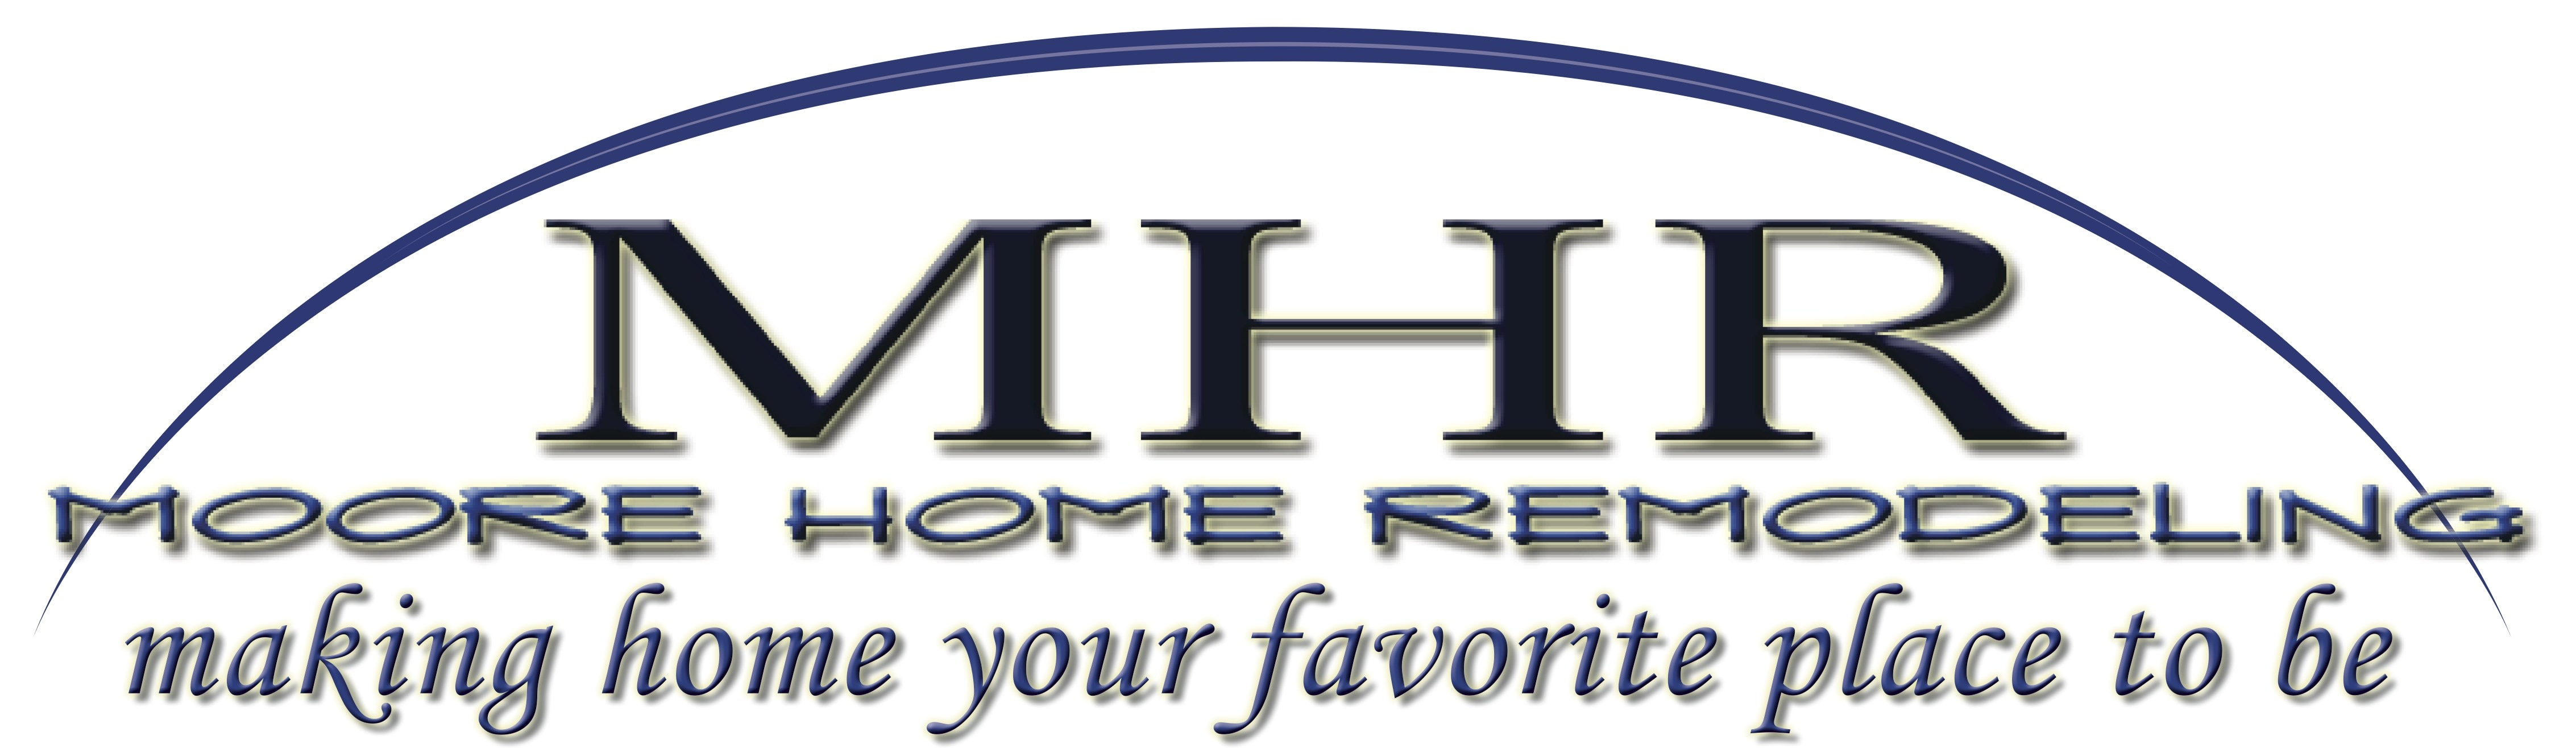 Moore Home Remodeling and Handyman Services	 logo